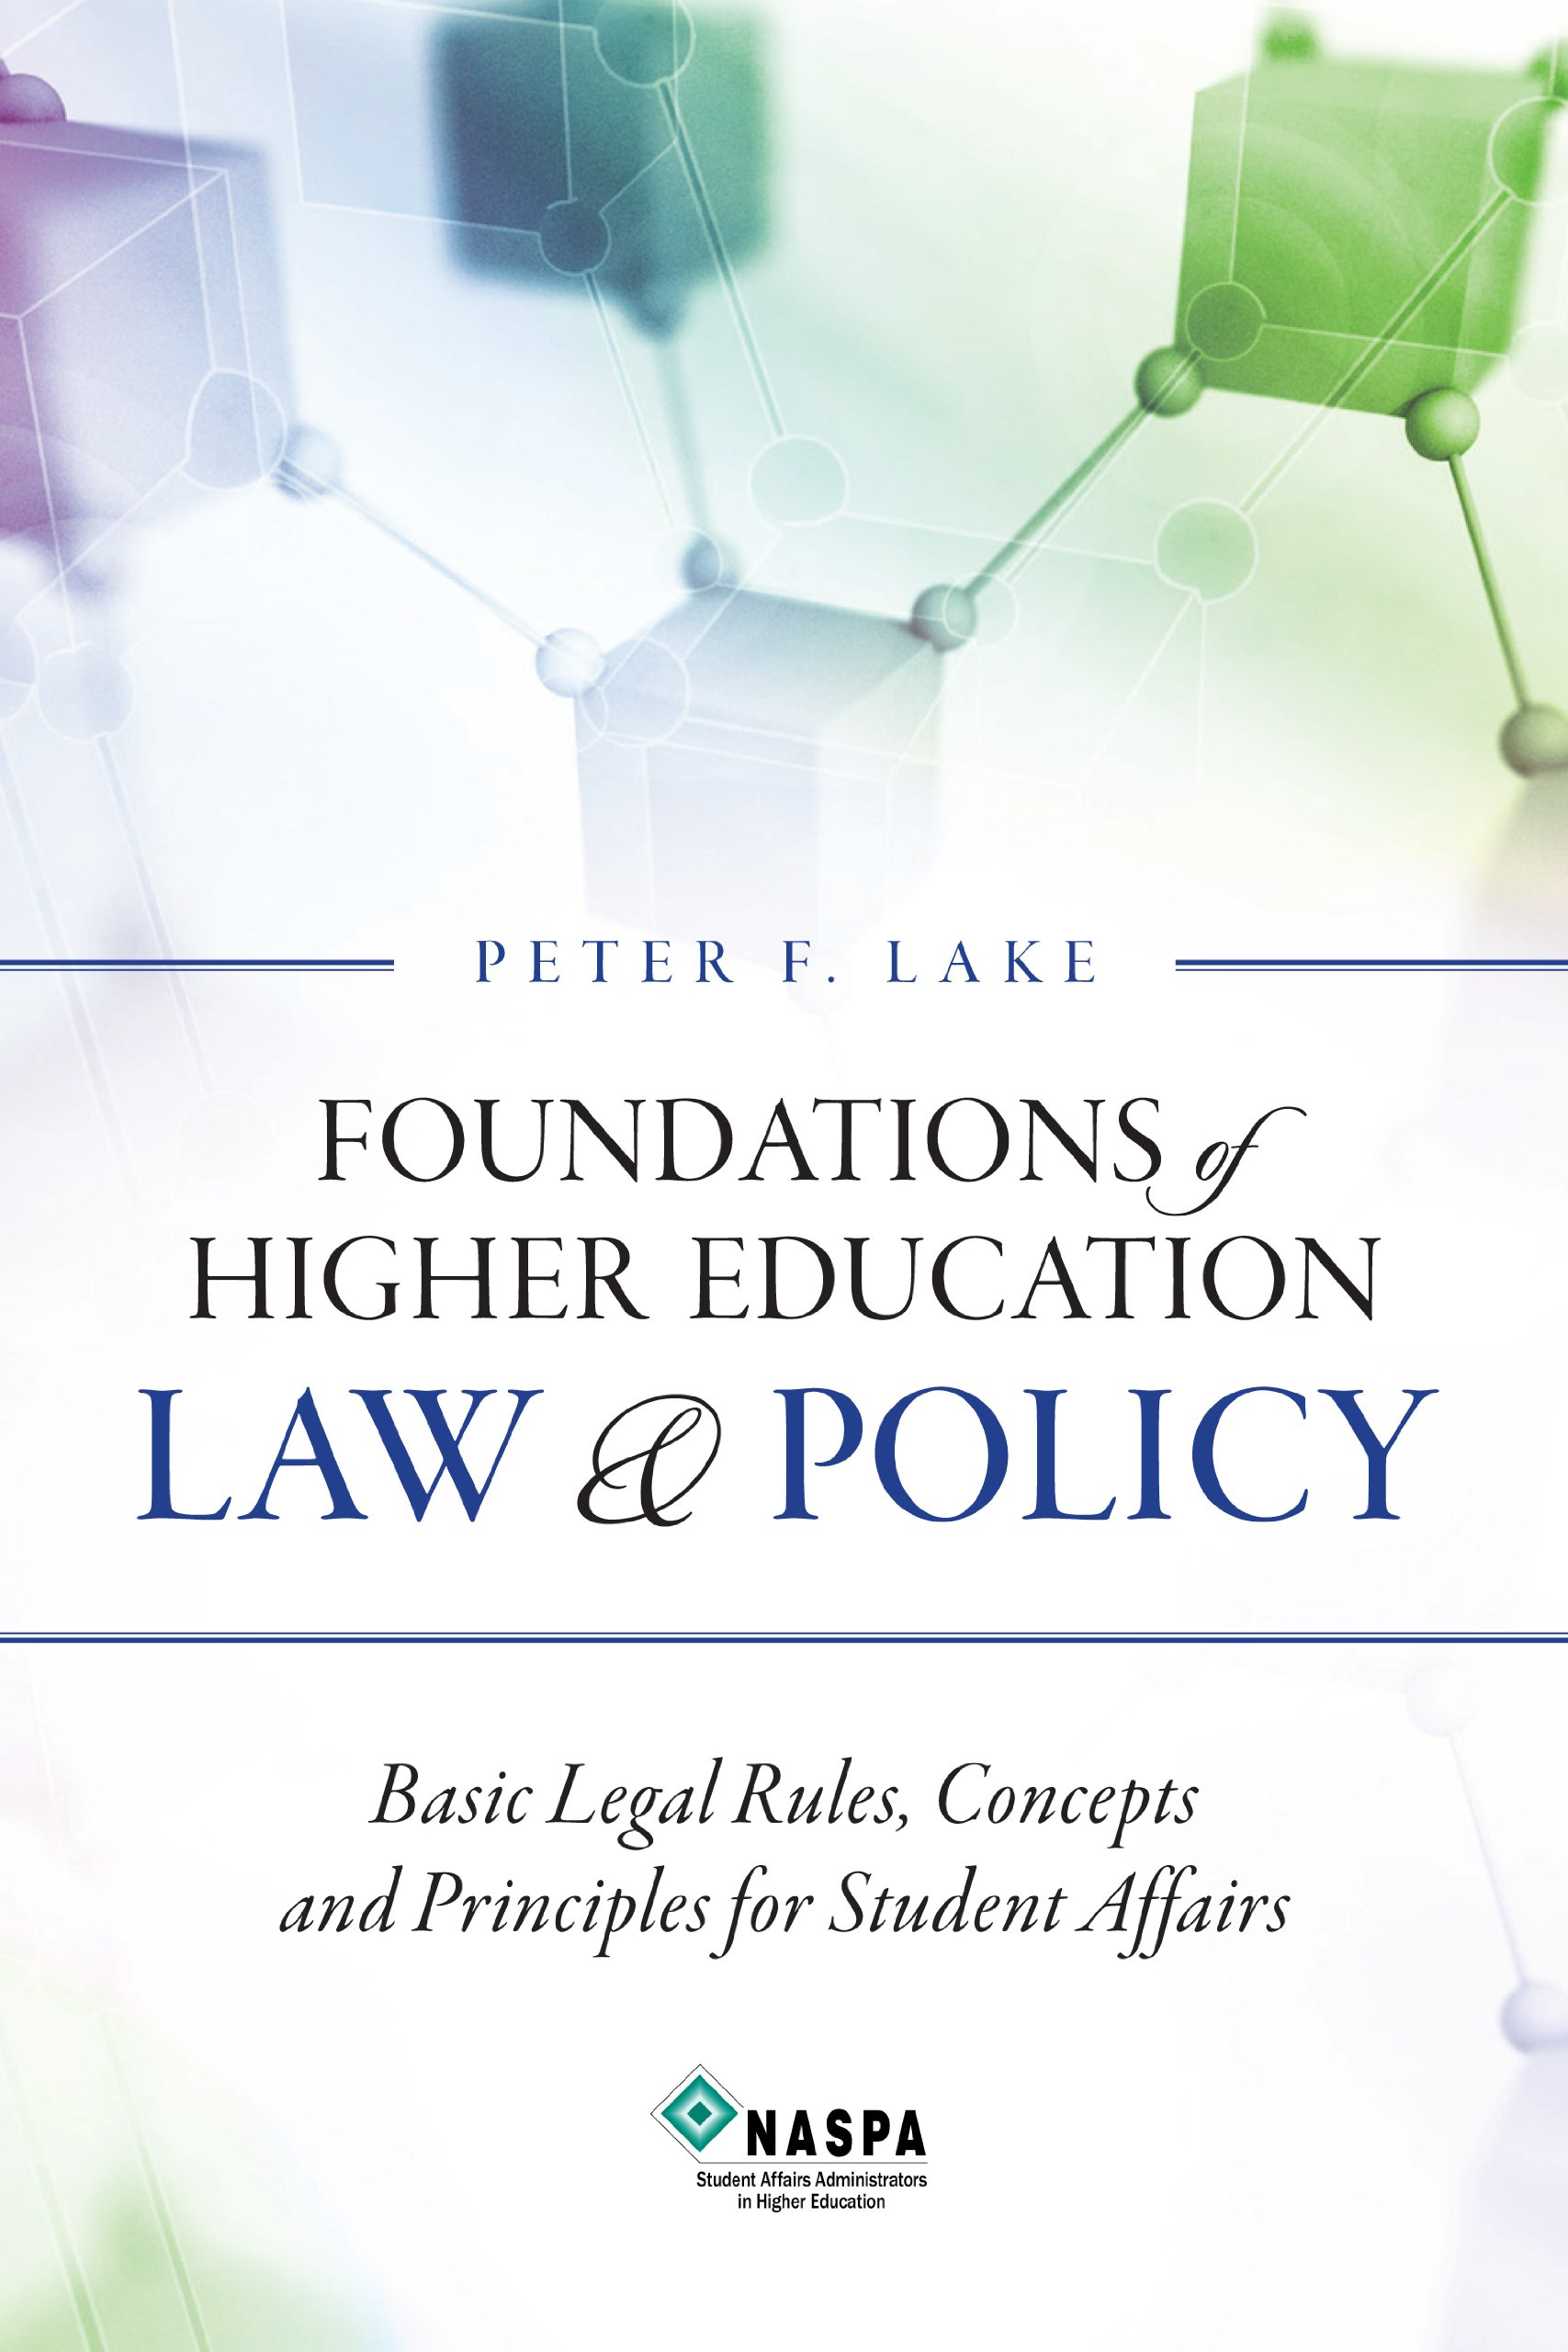 policy+and+law+staff+guidance